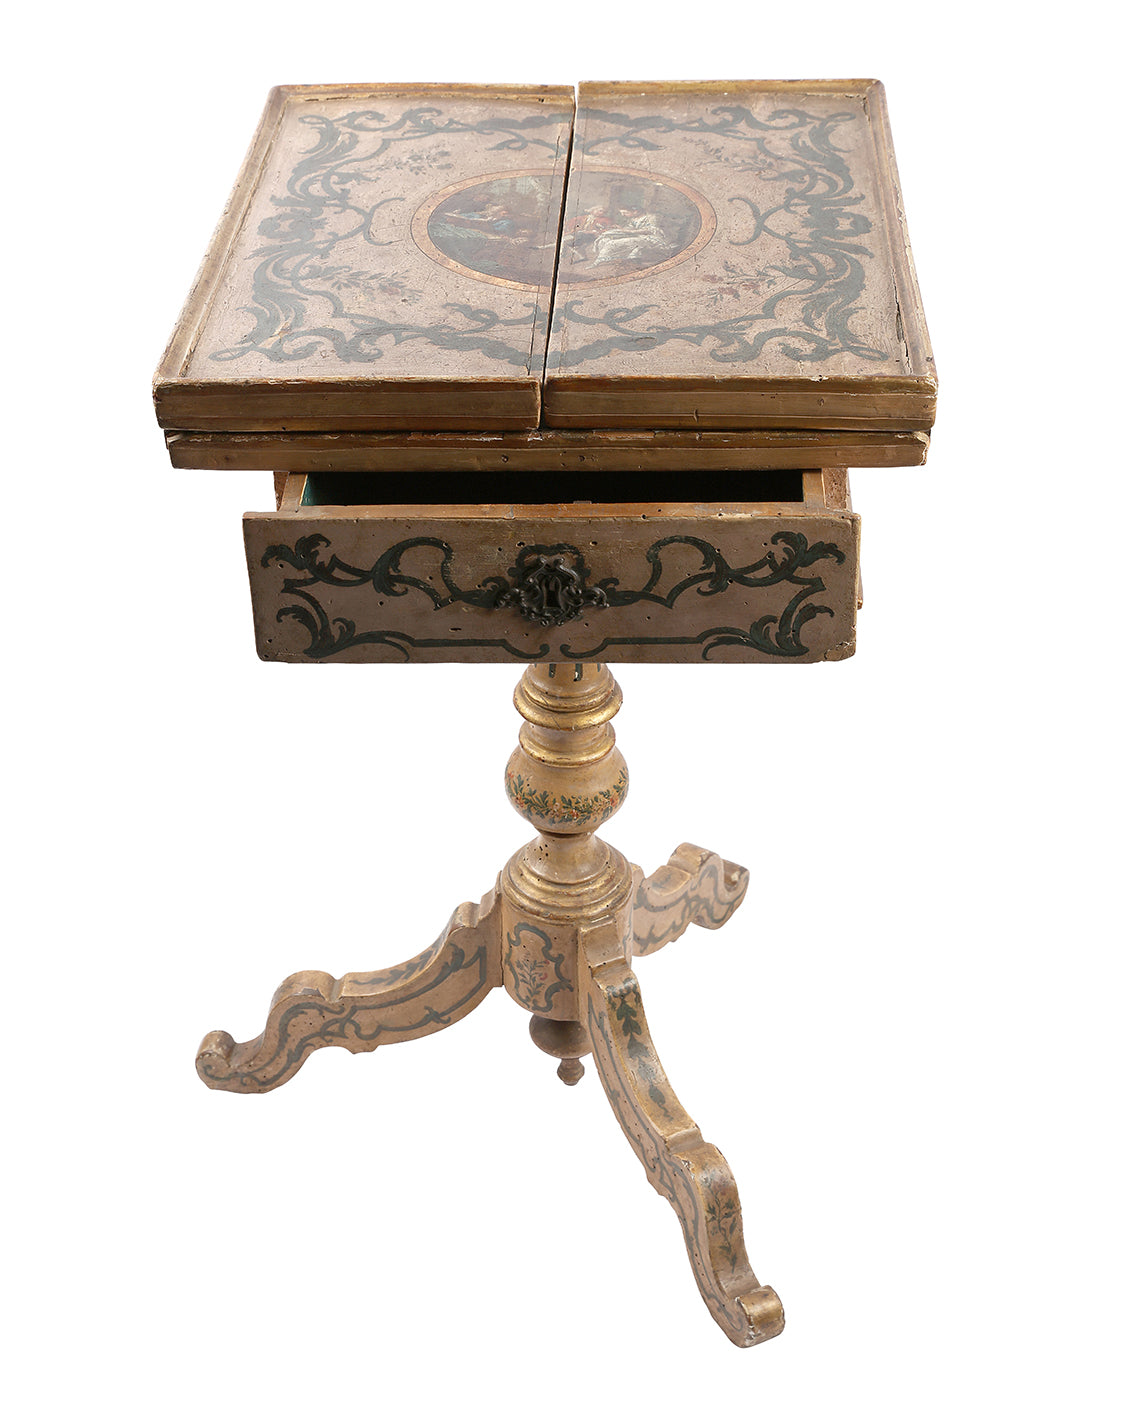 Venetian gaming table. XVIIIth century